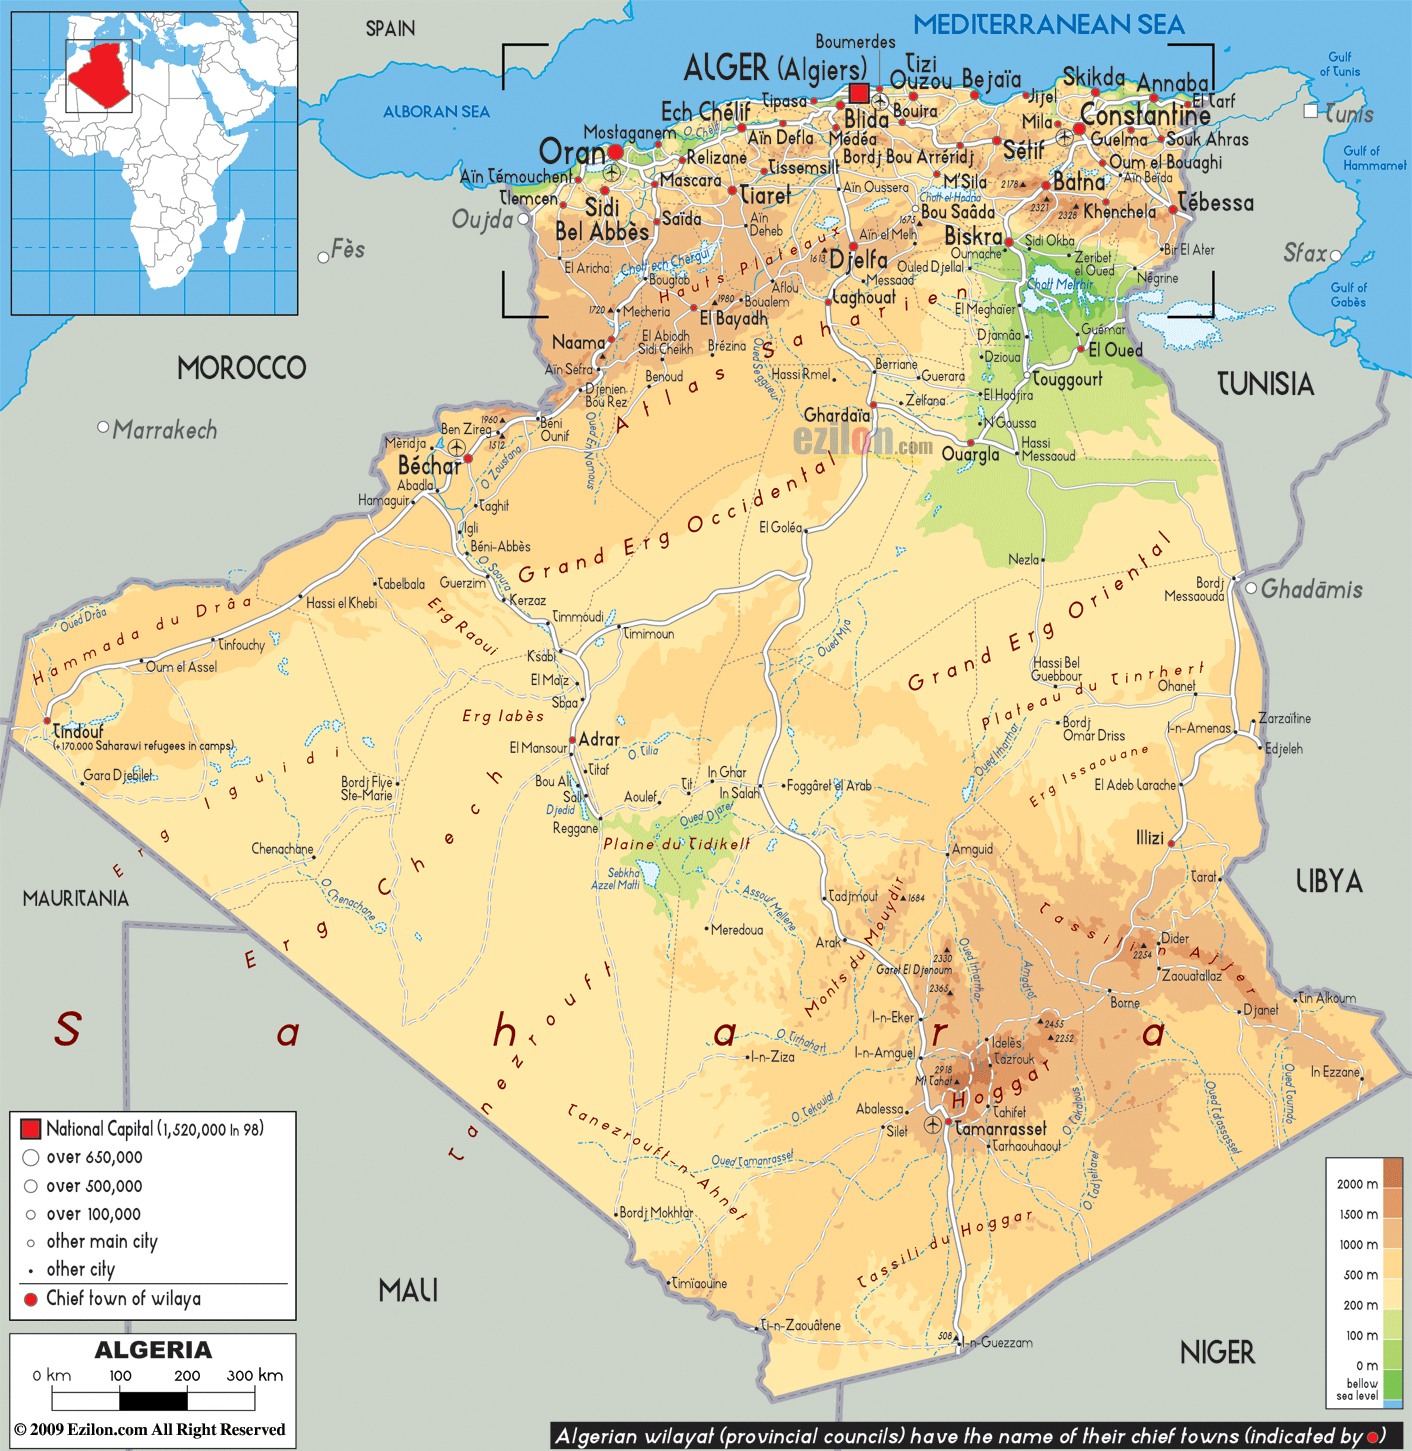 Maps Of Algeria Map Library Maps Of The World - Algeria map